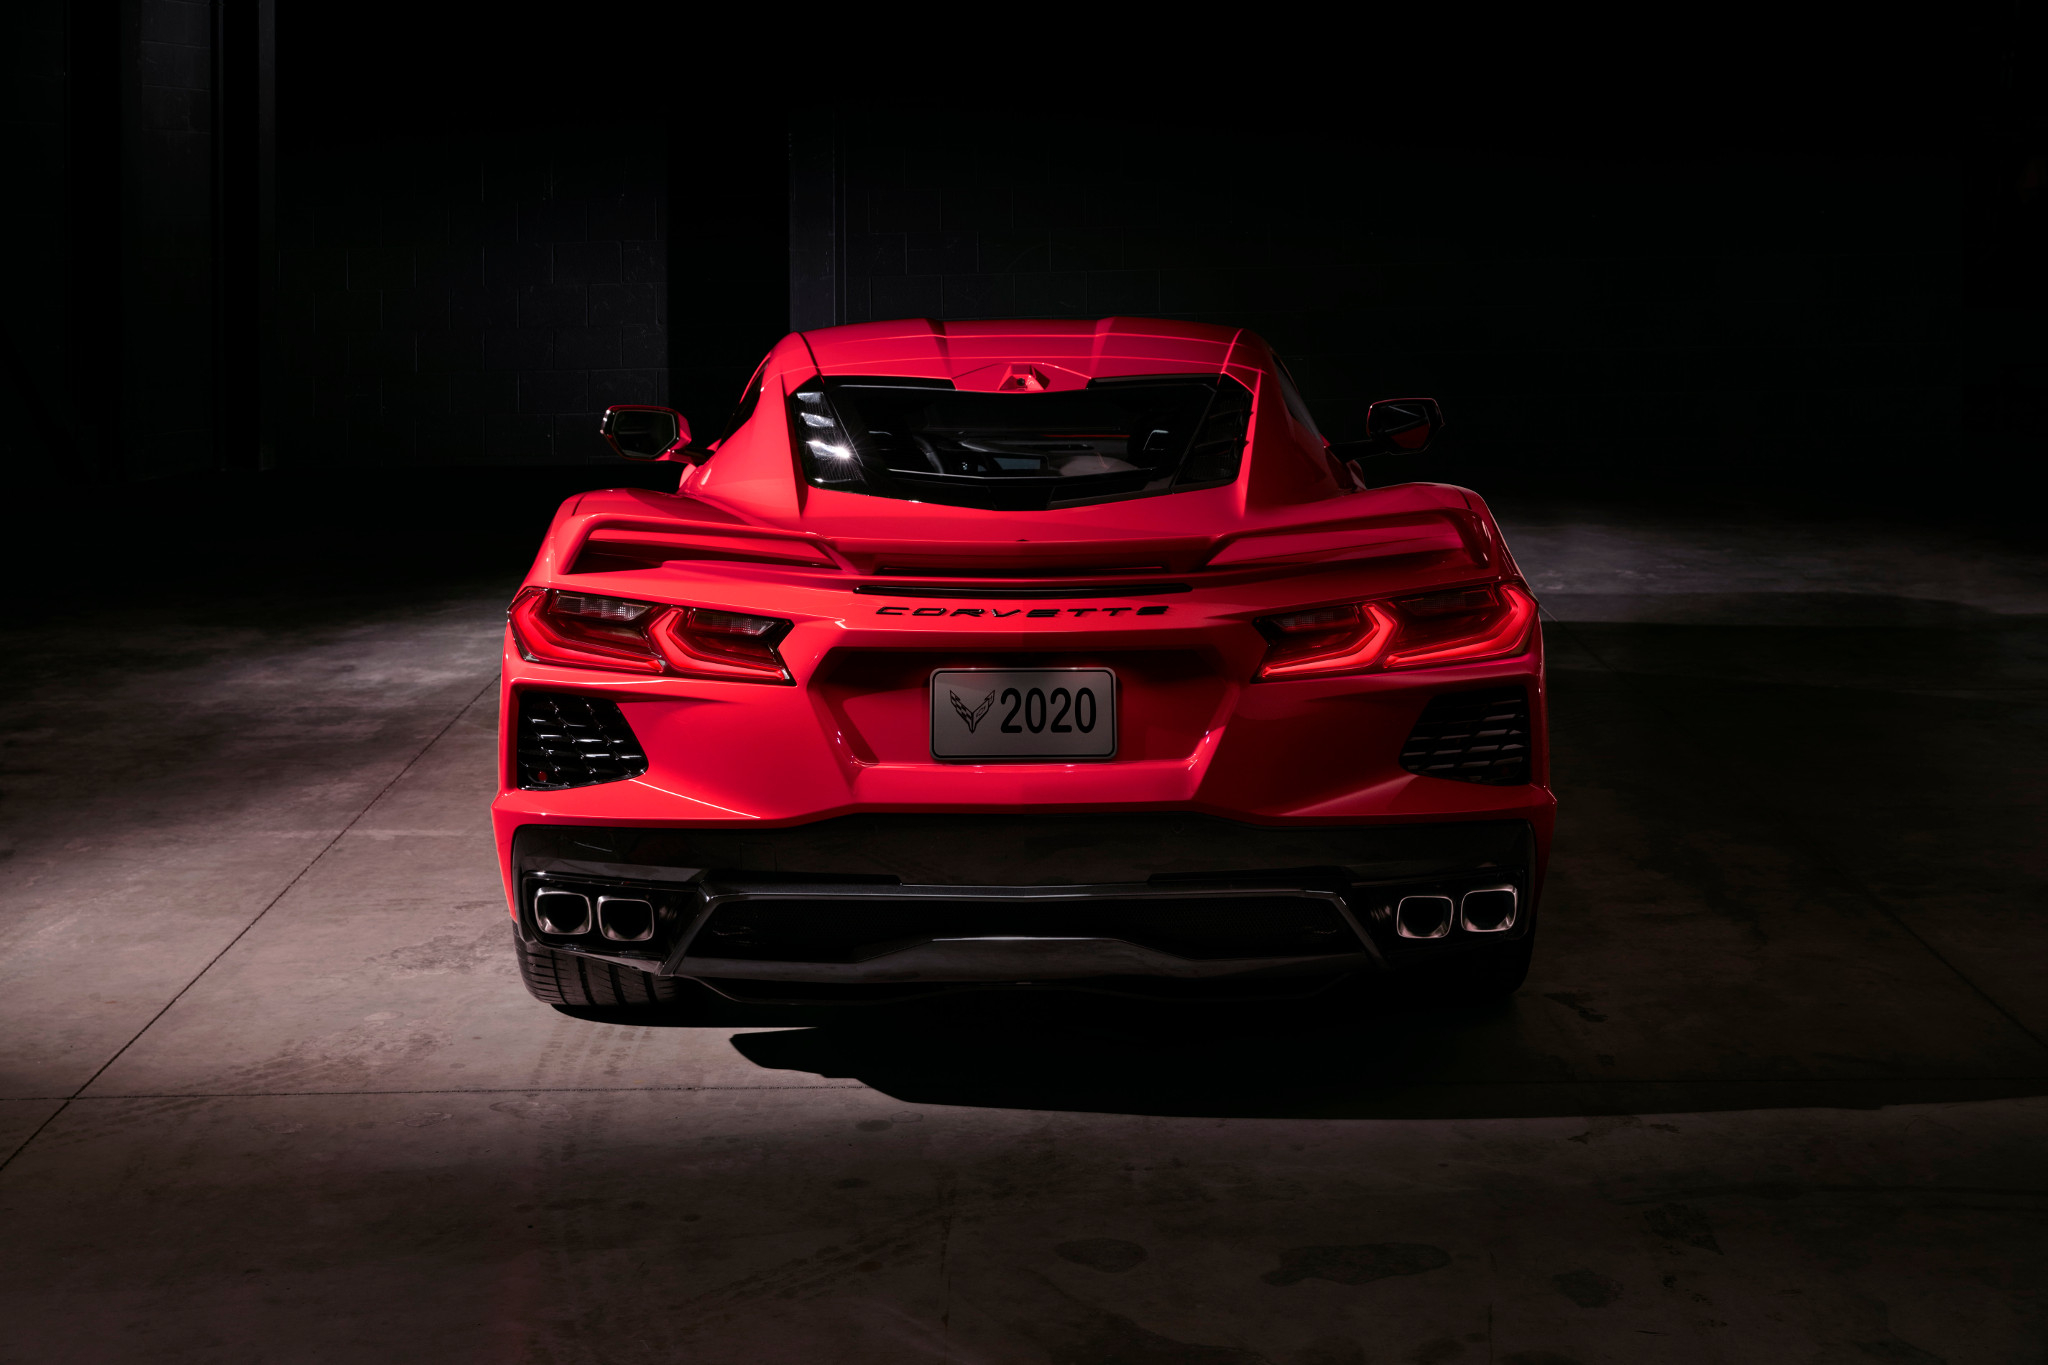 Here's What We Know About The 2020 Chevrolet Corvette | News 2021 Chevy Corvette Grand Sport Interior, Owners Manual, Review